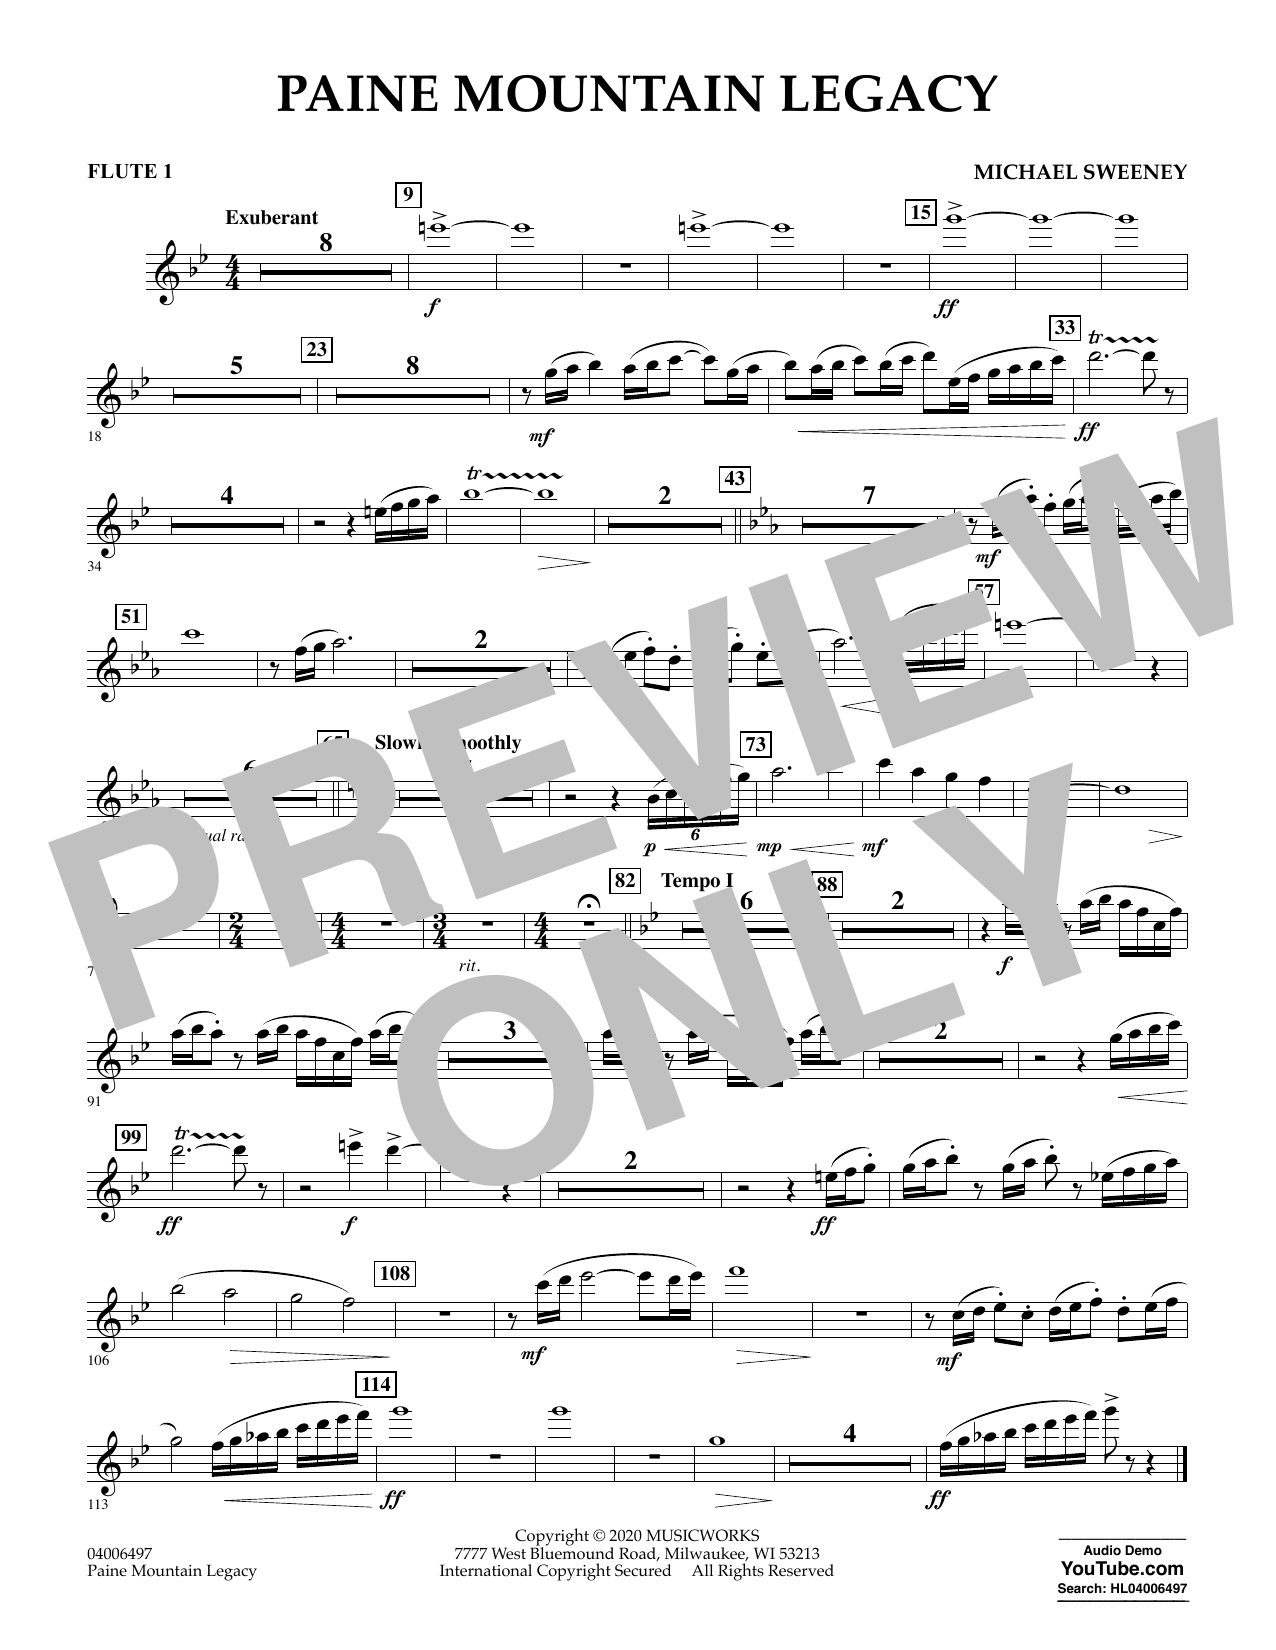 Michael Sweeney Paine Mountain Legacy - Flute 1 sheet music notes and chords. Download Printable PDF.